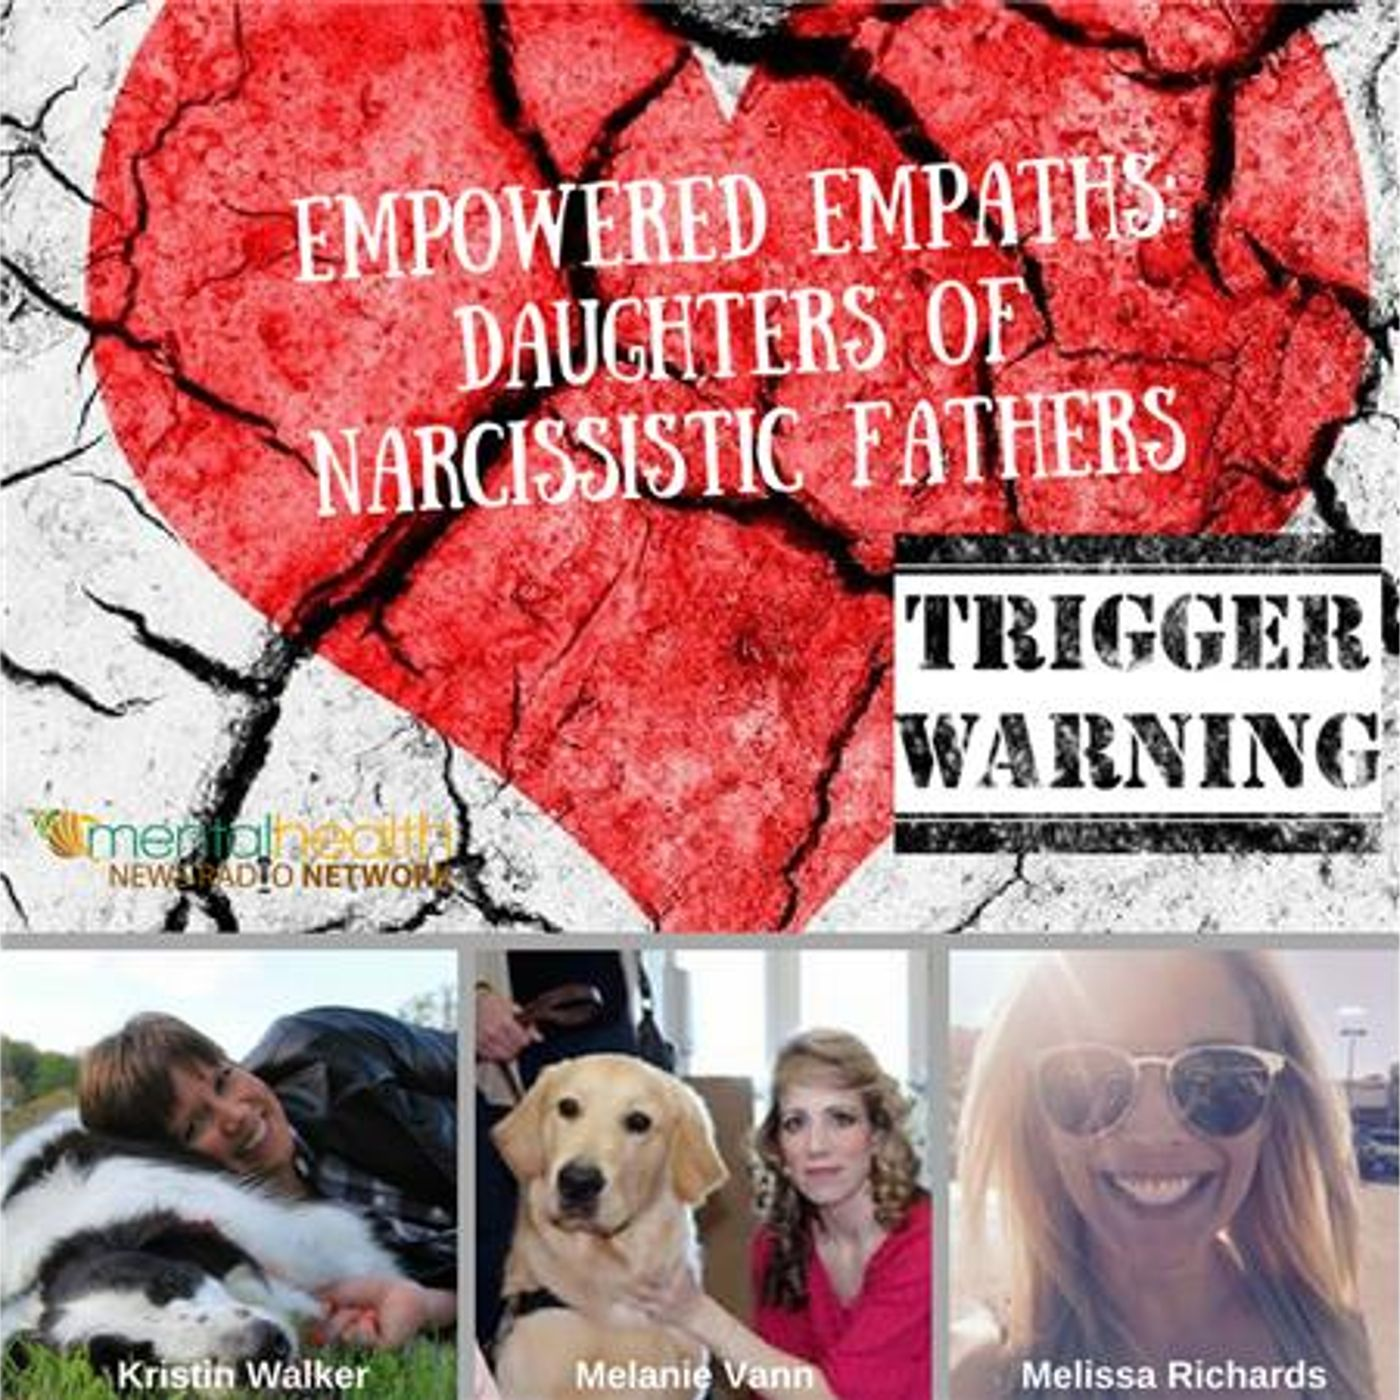 Mental Health News Radio - Empowered Empaths: Daughters of Narcissistic Fathers